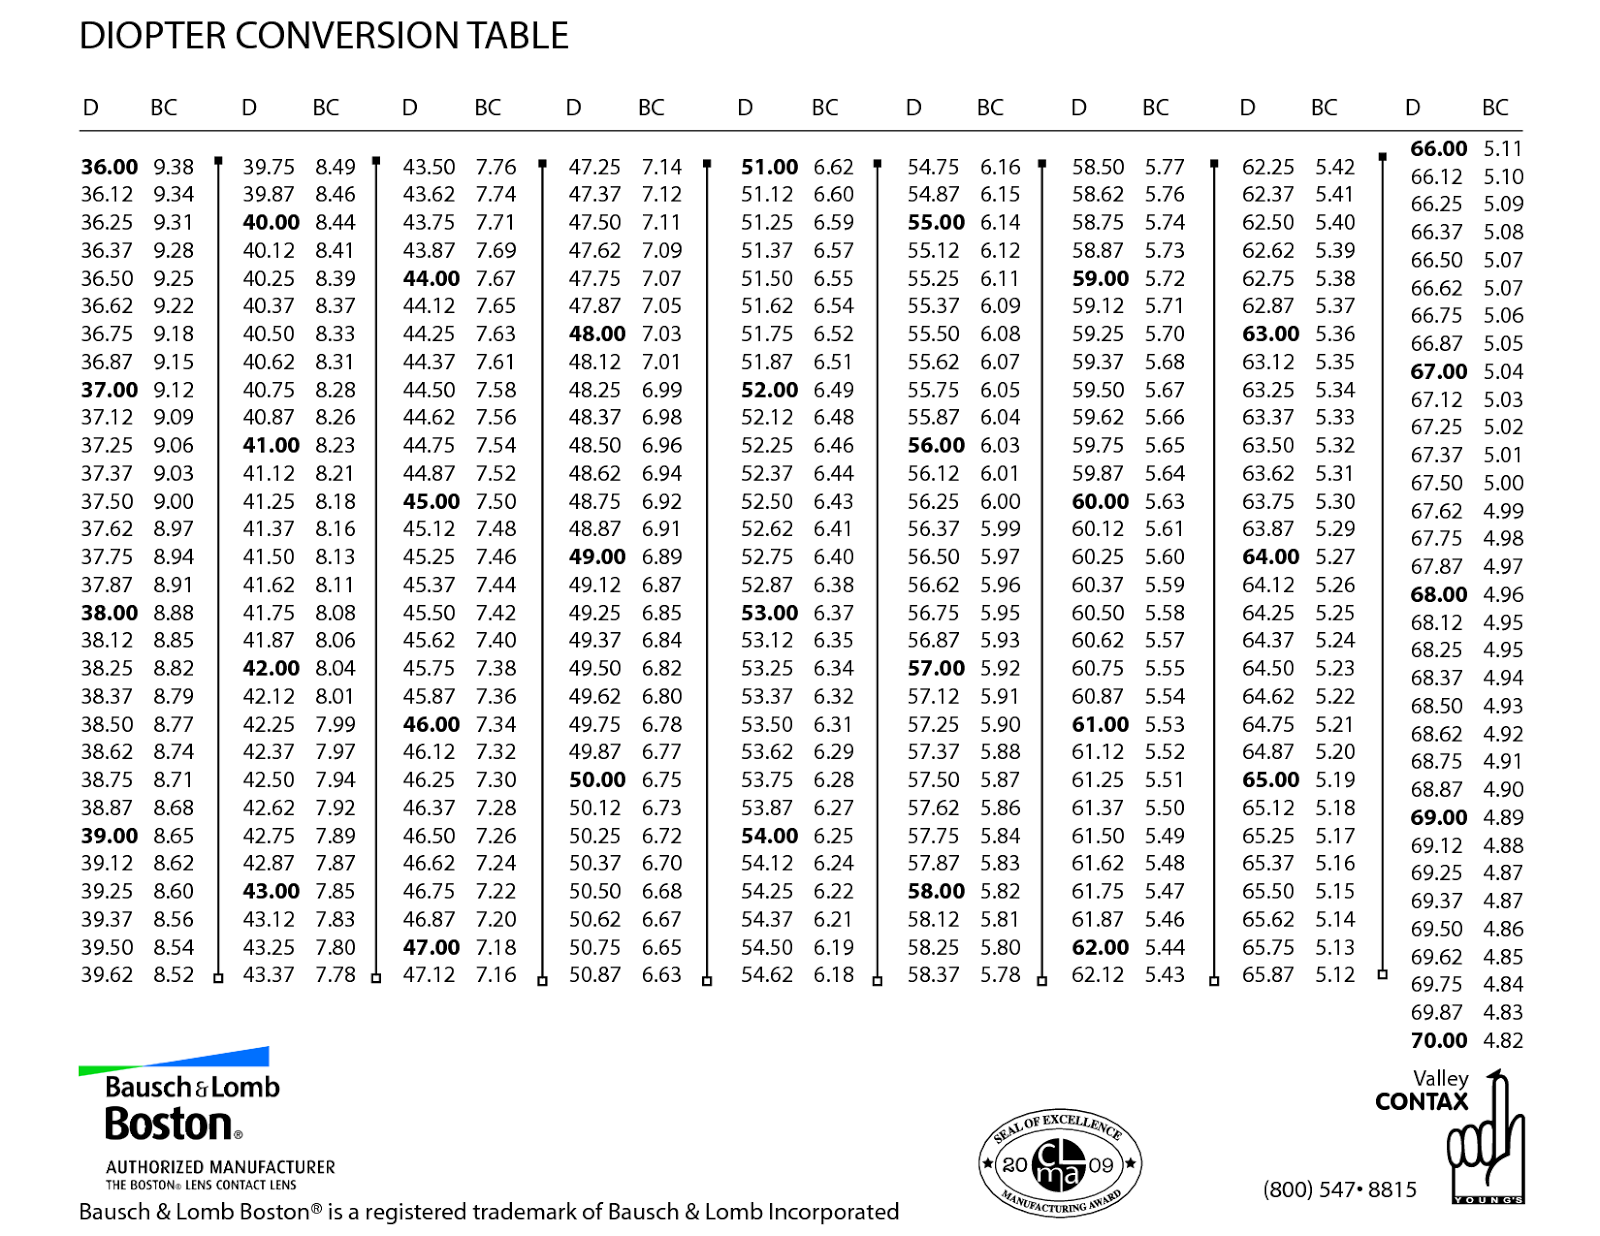 contact lens conversion chart: Synergeyes duette fitting guide for the new od eyedolatry